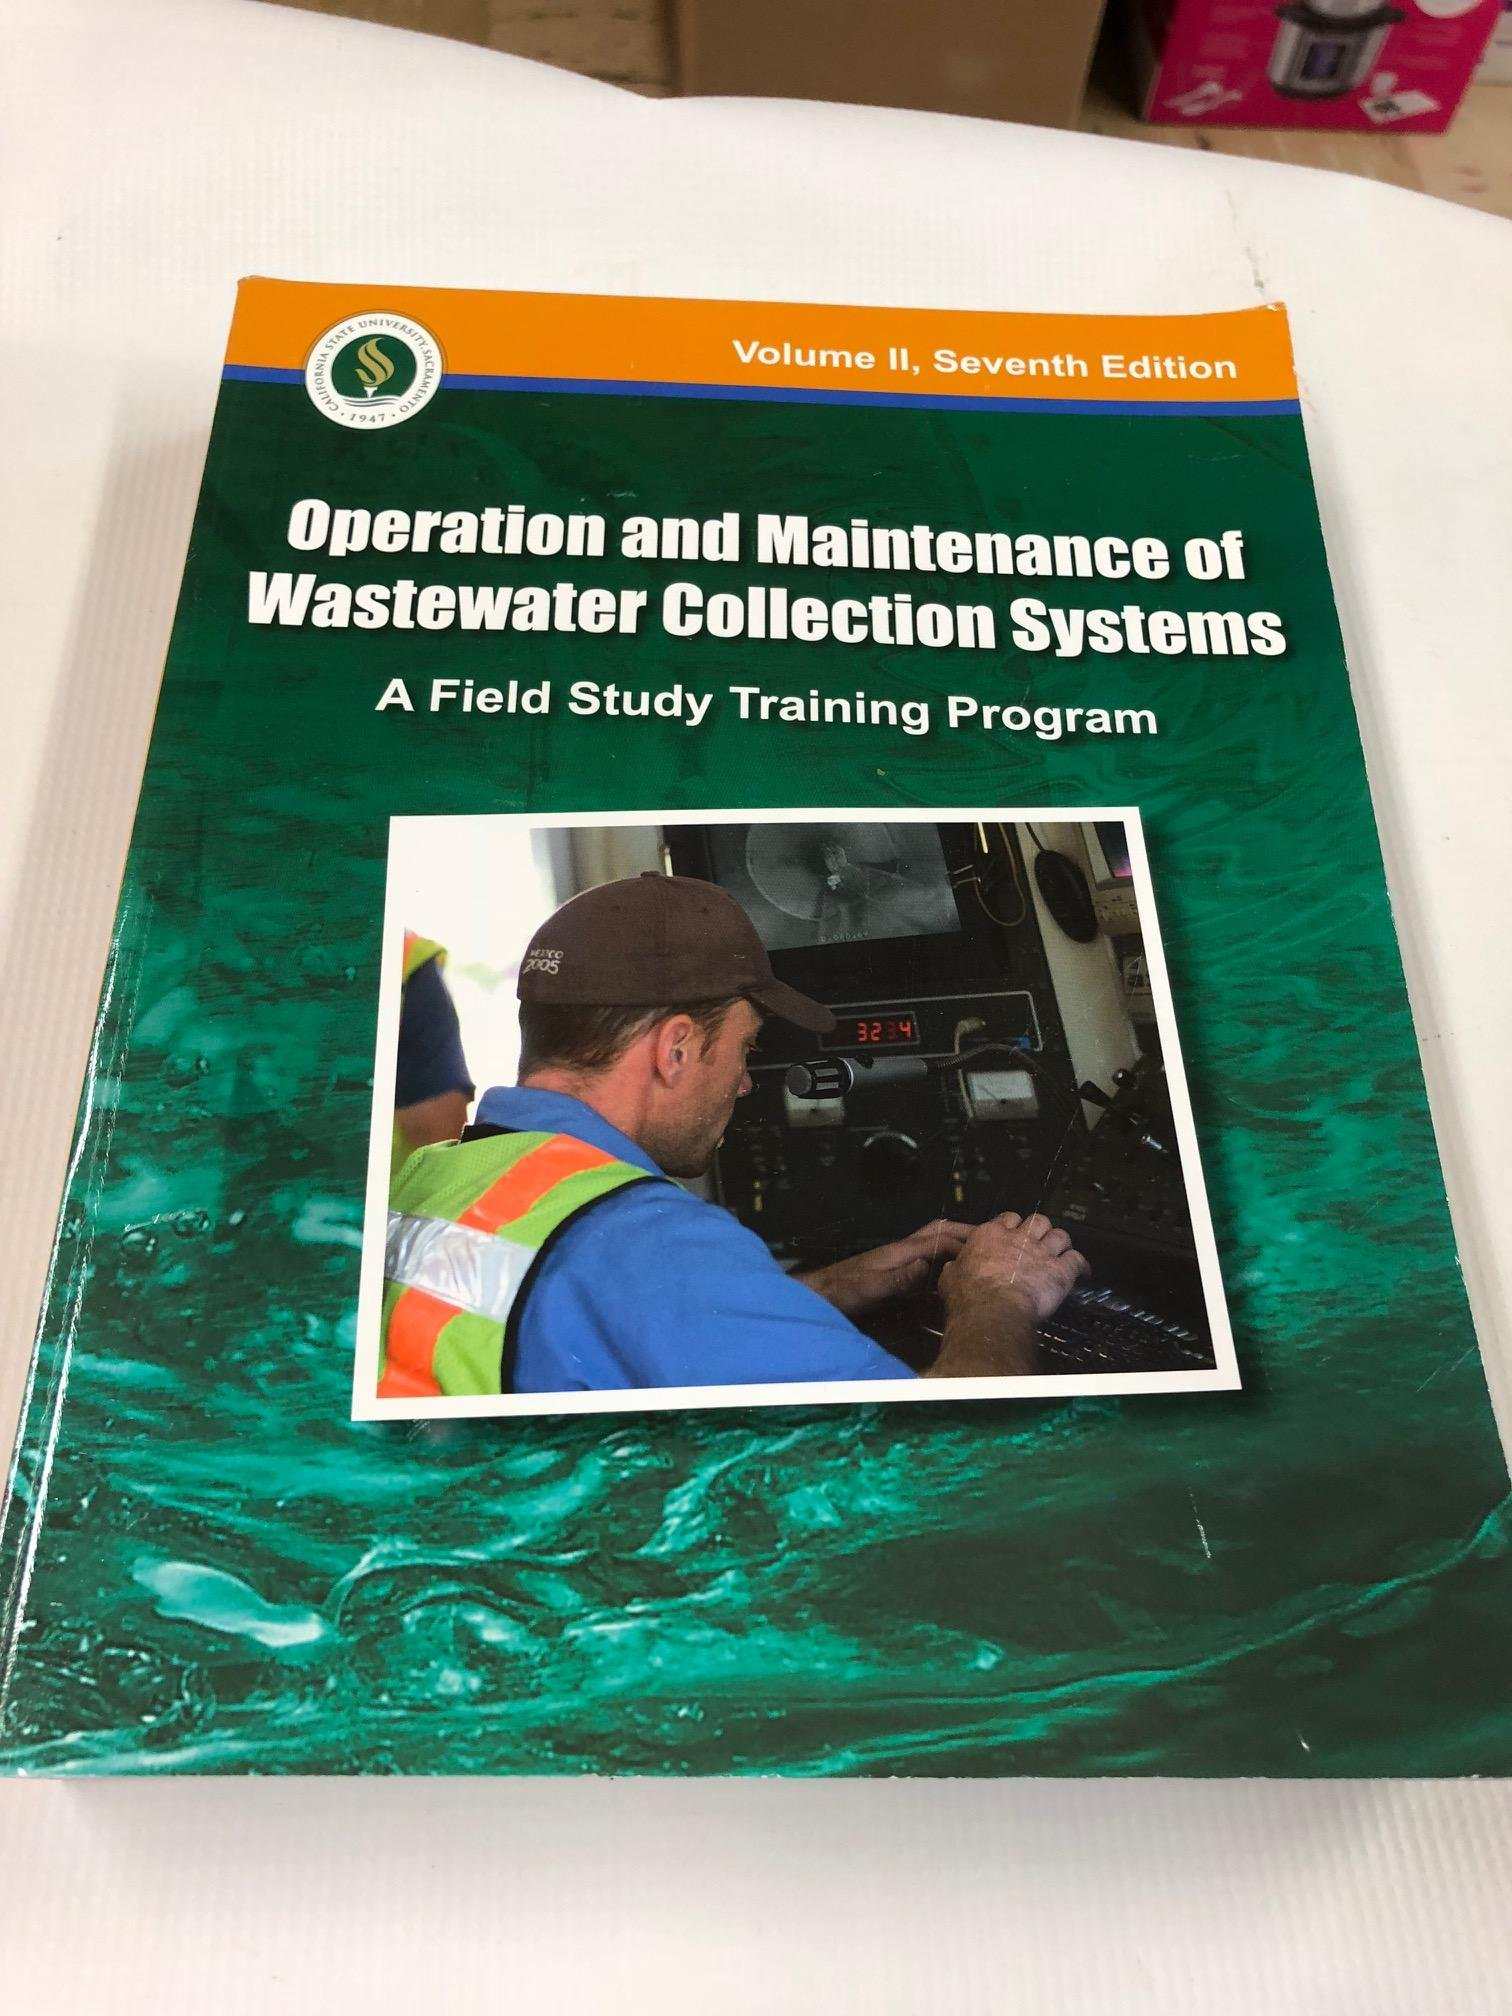 Operation and Maintenance of Wastewater Collection Systems, Volume II (A  Field Study Training Program): Kenneth D. Kerri: 9781593710422: Amazon.com:  Books